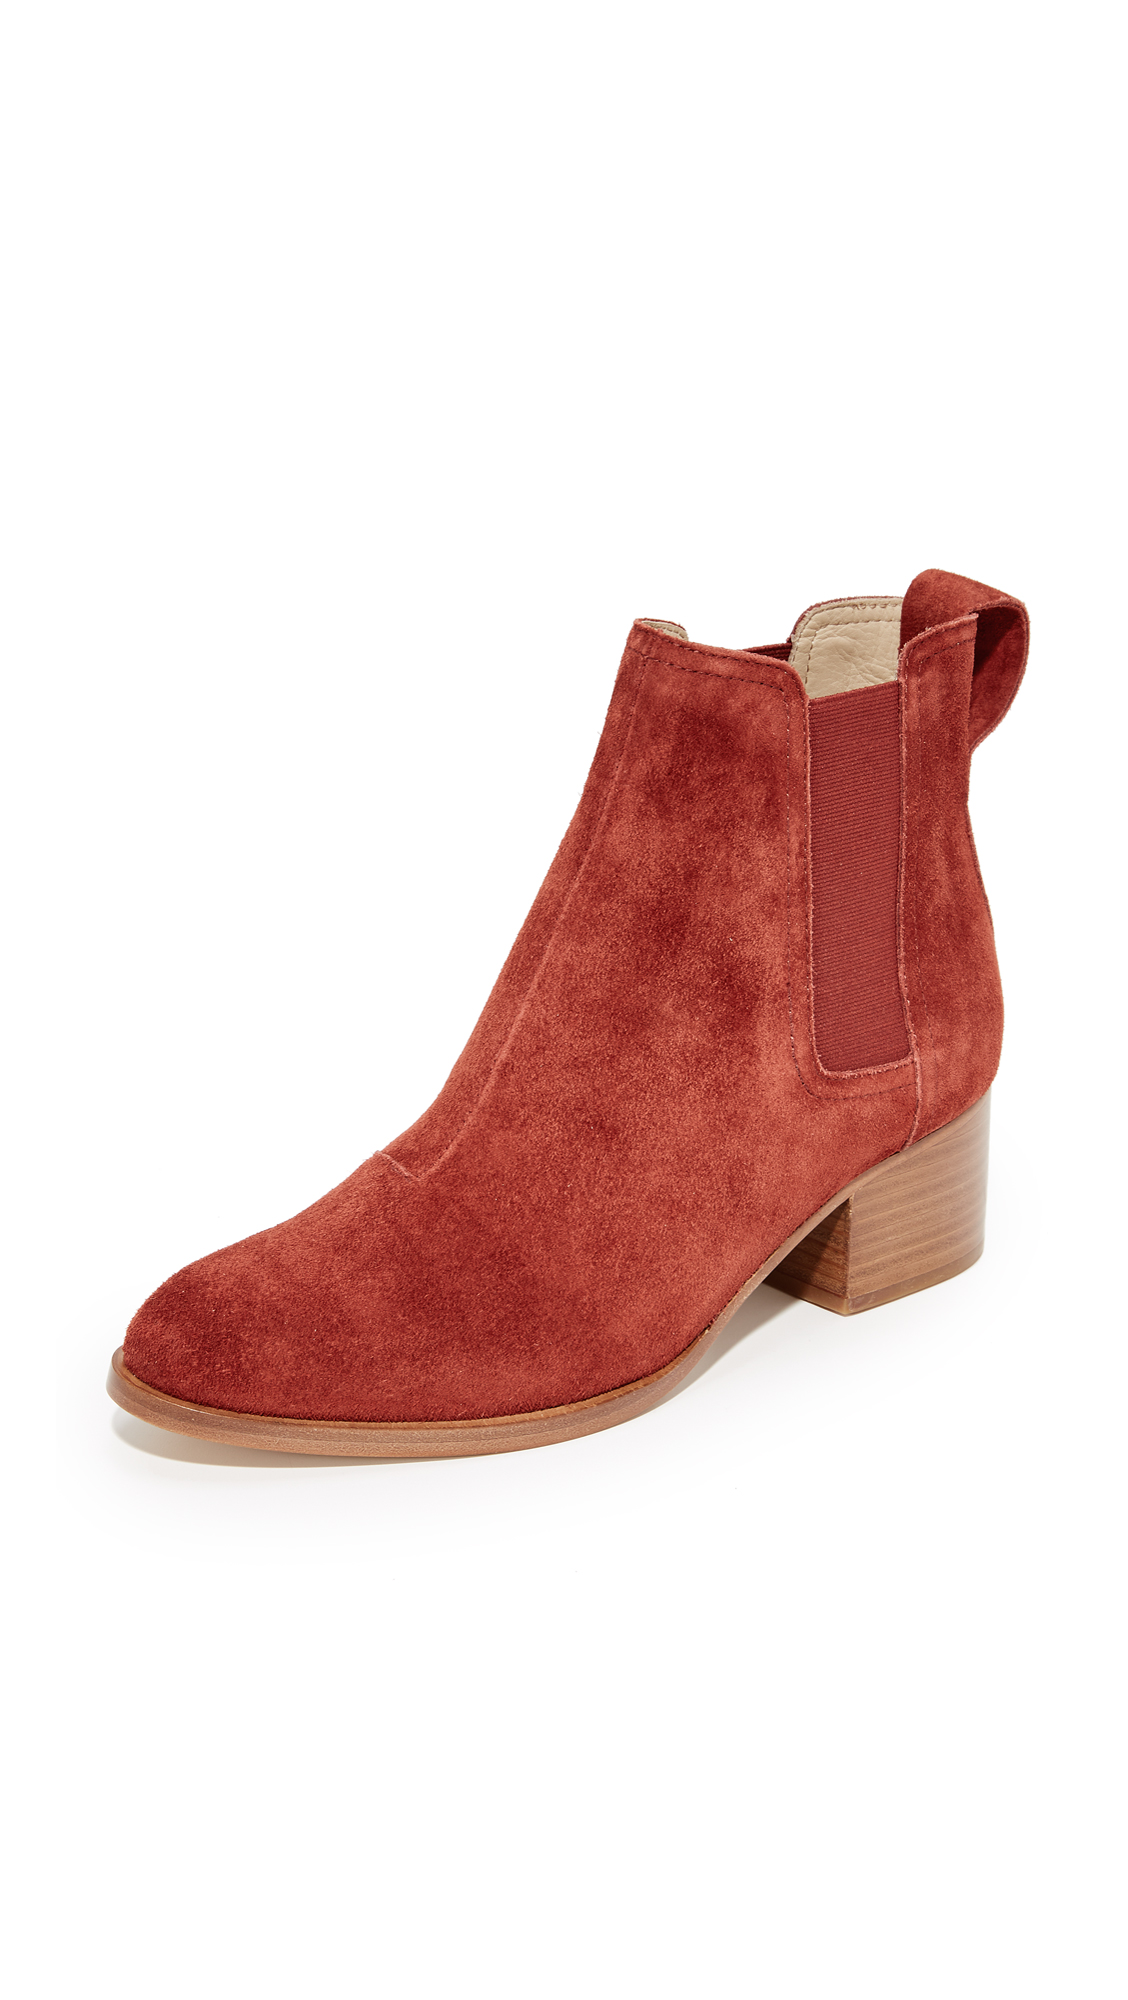 Rag & Bone Walker Boots - Rust